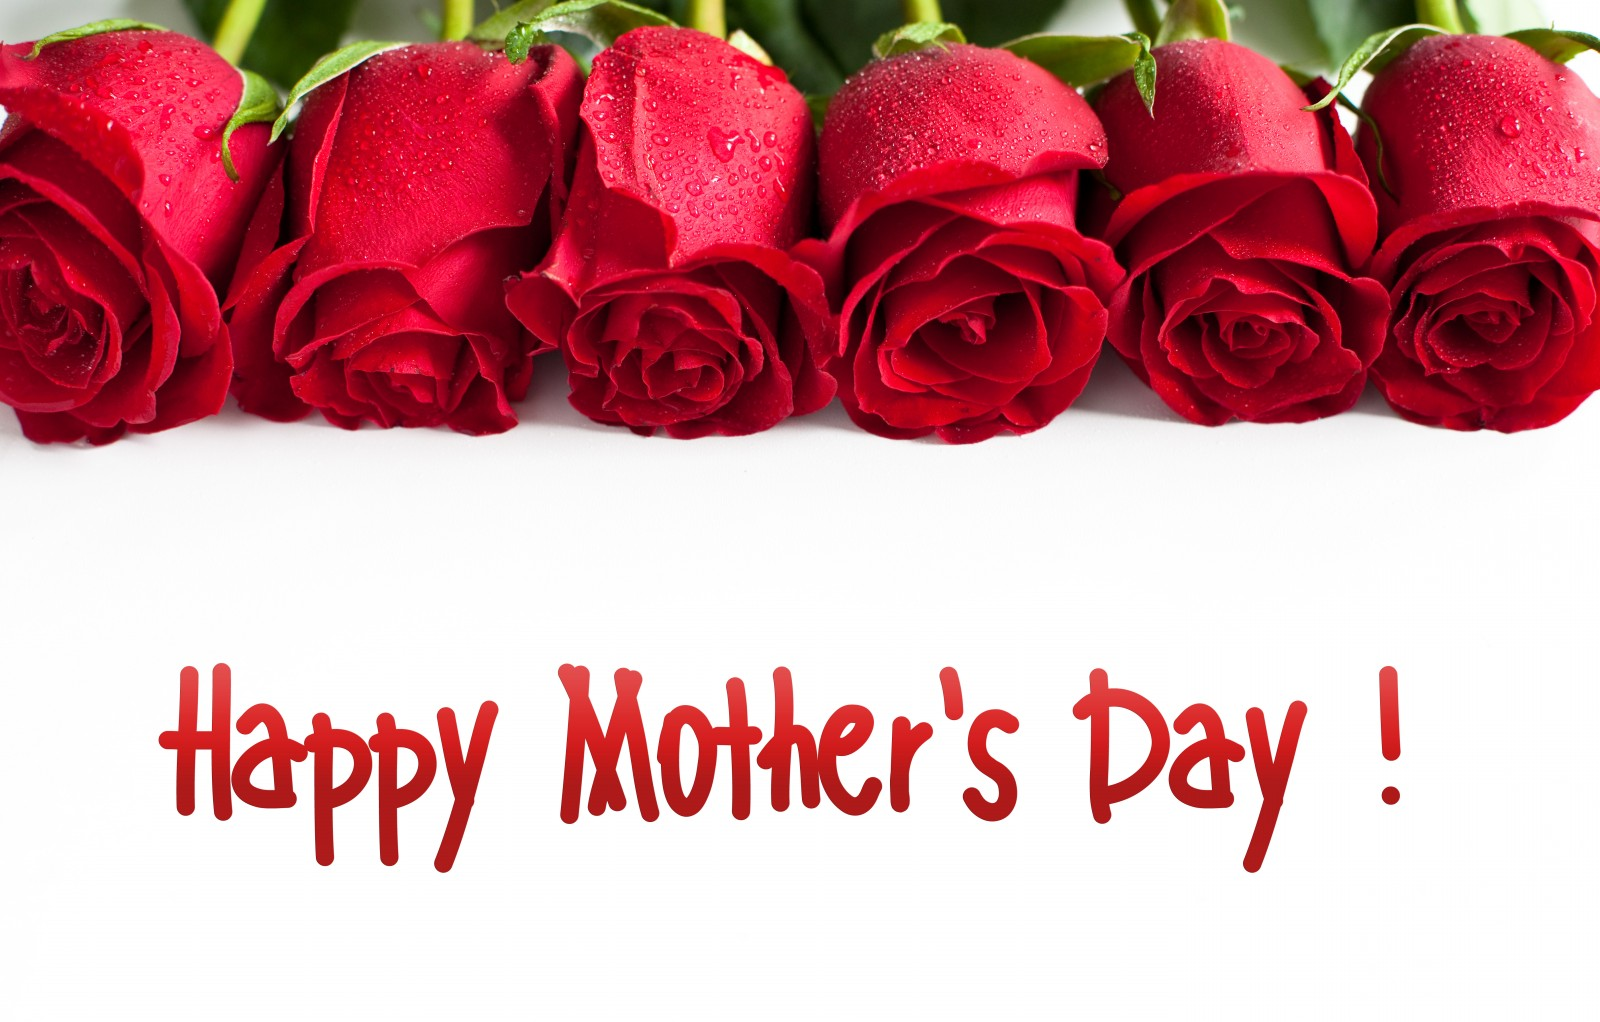 happy mothers day images, wallpaper and greetings  polesmag, Natural flower